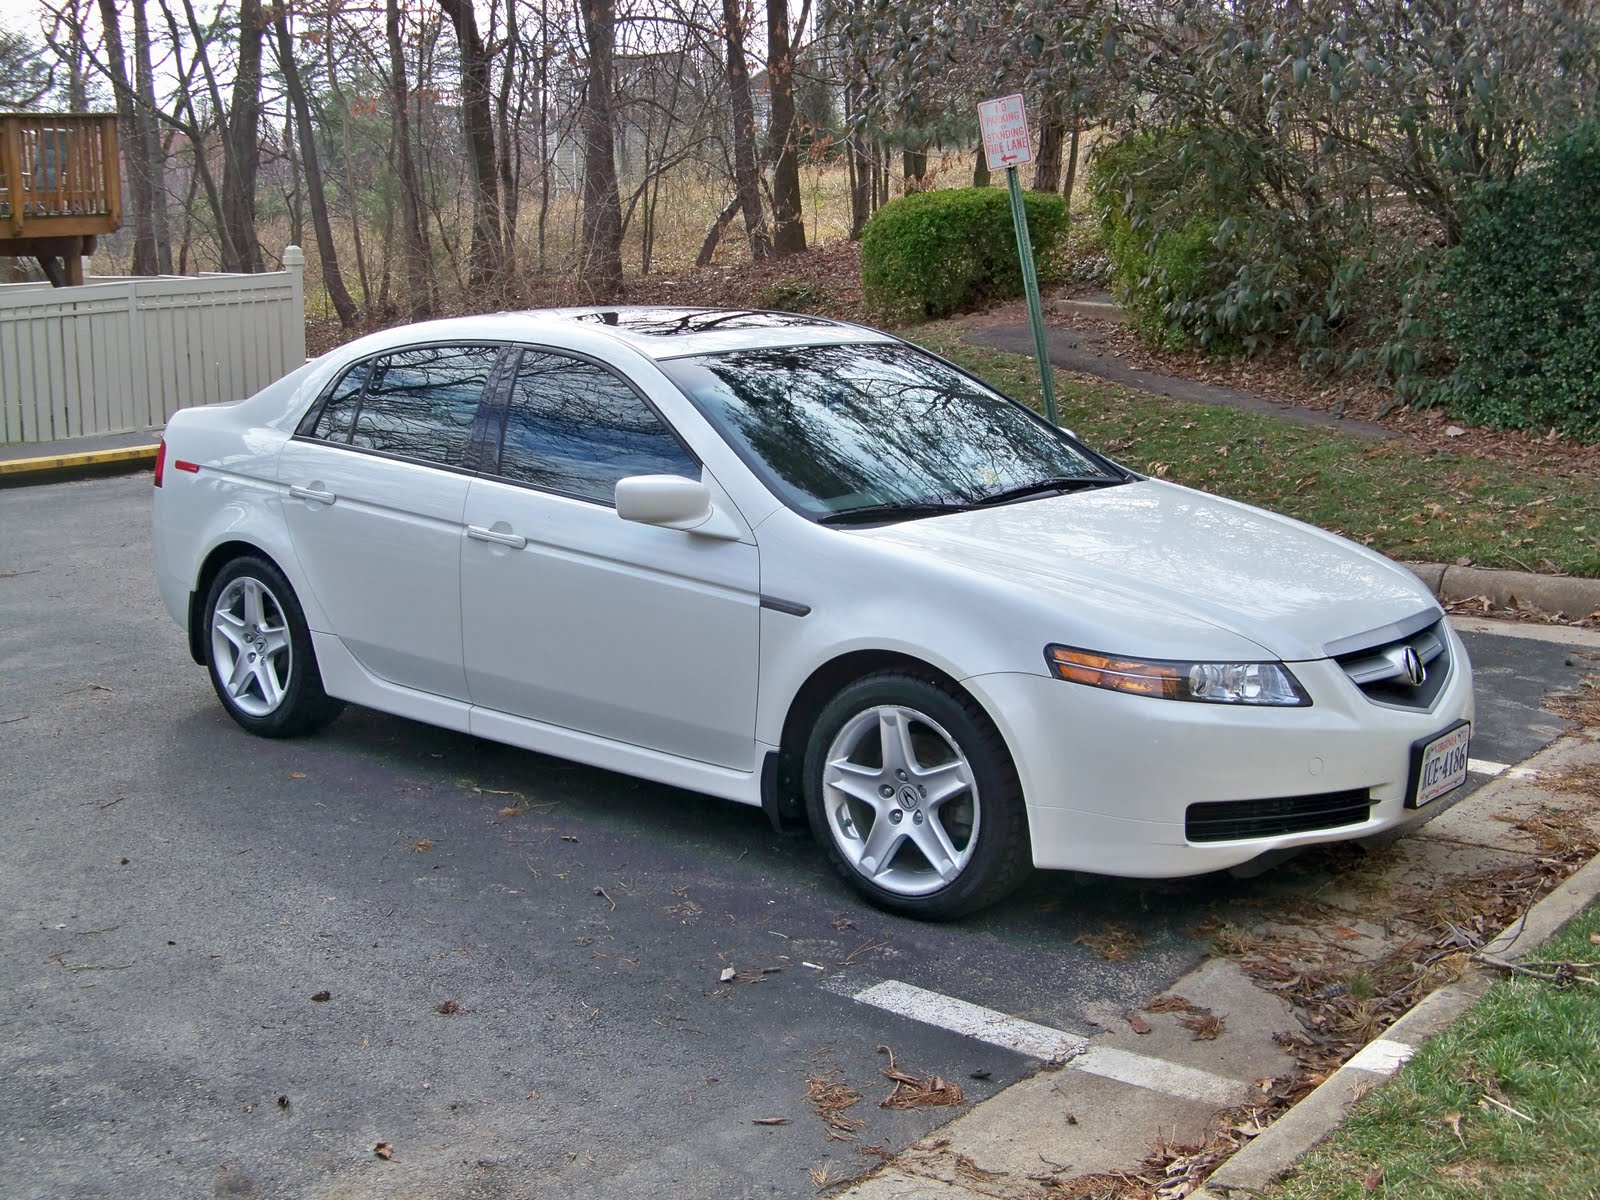 amol 39 s stuff to sell 2006 acura tl for sale 16900 obo. Black Bedroom Furniture Sets. Home Design Ideas